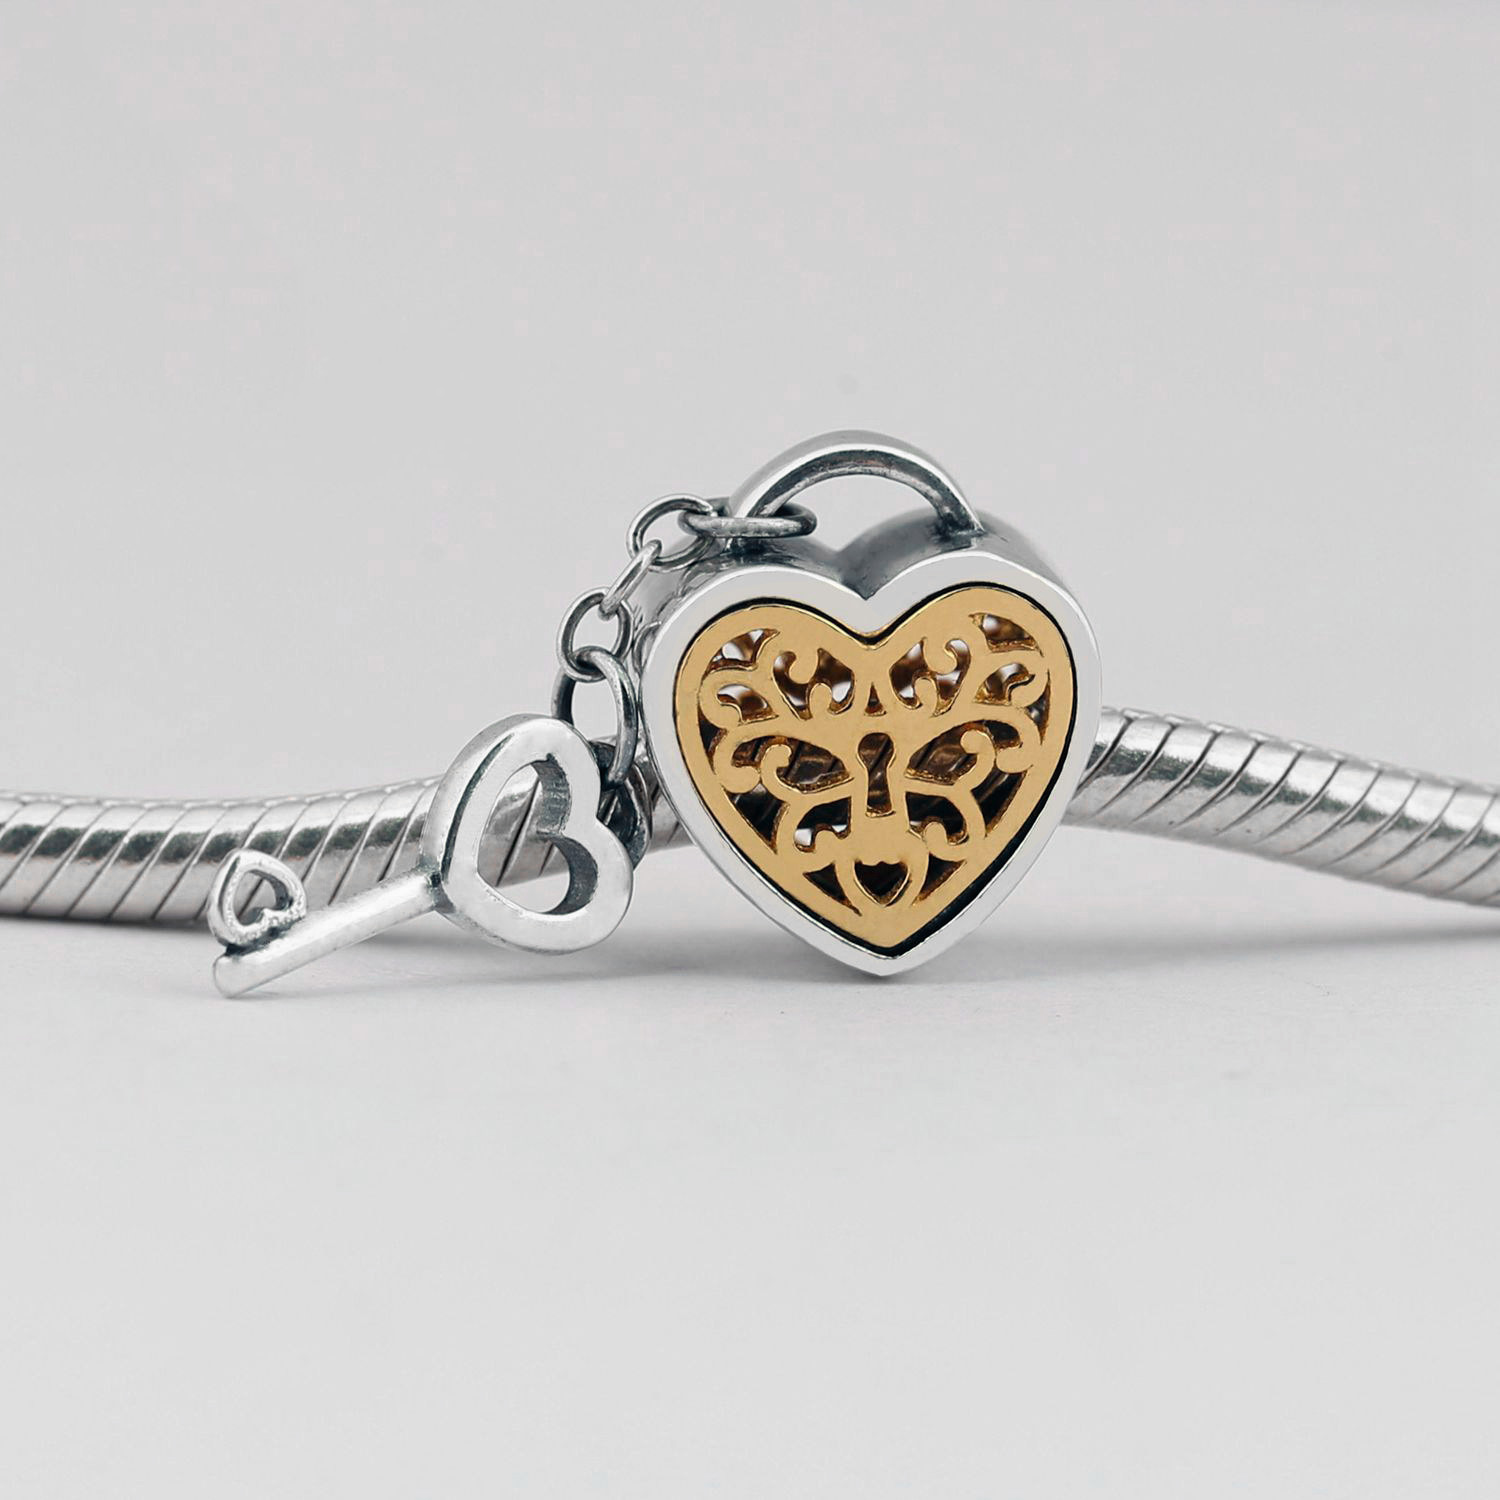 Useful 925 Sterling Silver Charms Bead Diy Gold Love Lock Beads For Original Pandora 925 Sterling Silver Bracelets Bangles Xcy127 Making Things Convenient For The People Jewelry & Accessories